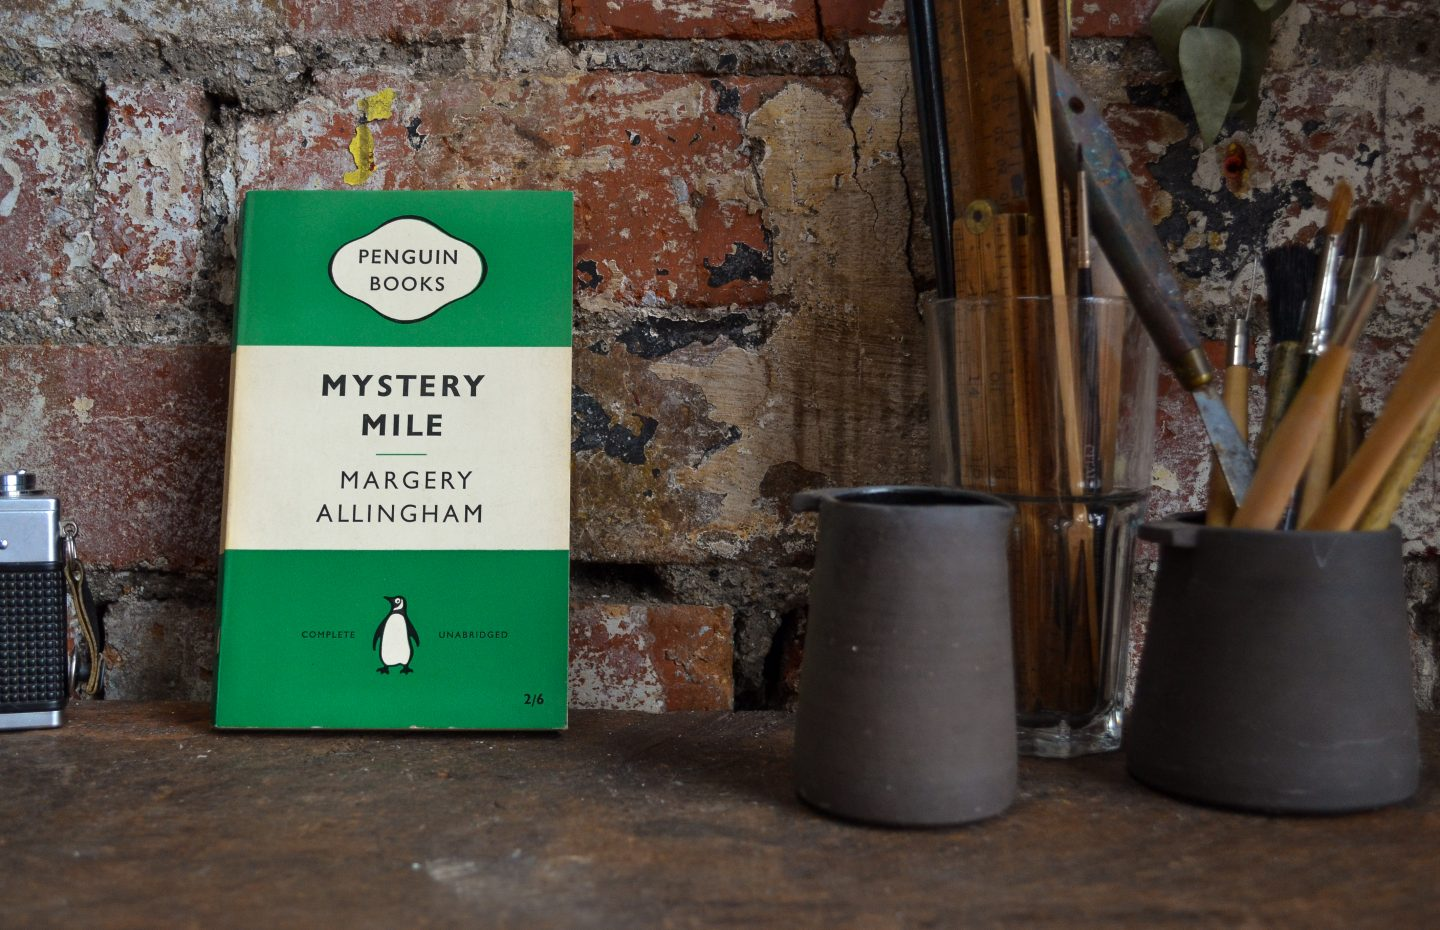 Mystery Mile by Margery Alingham